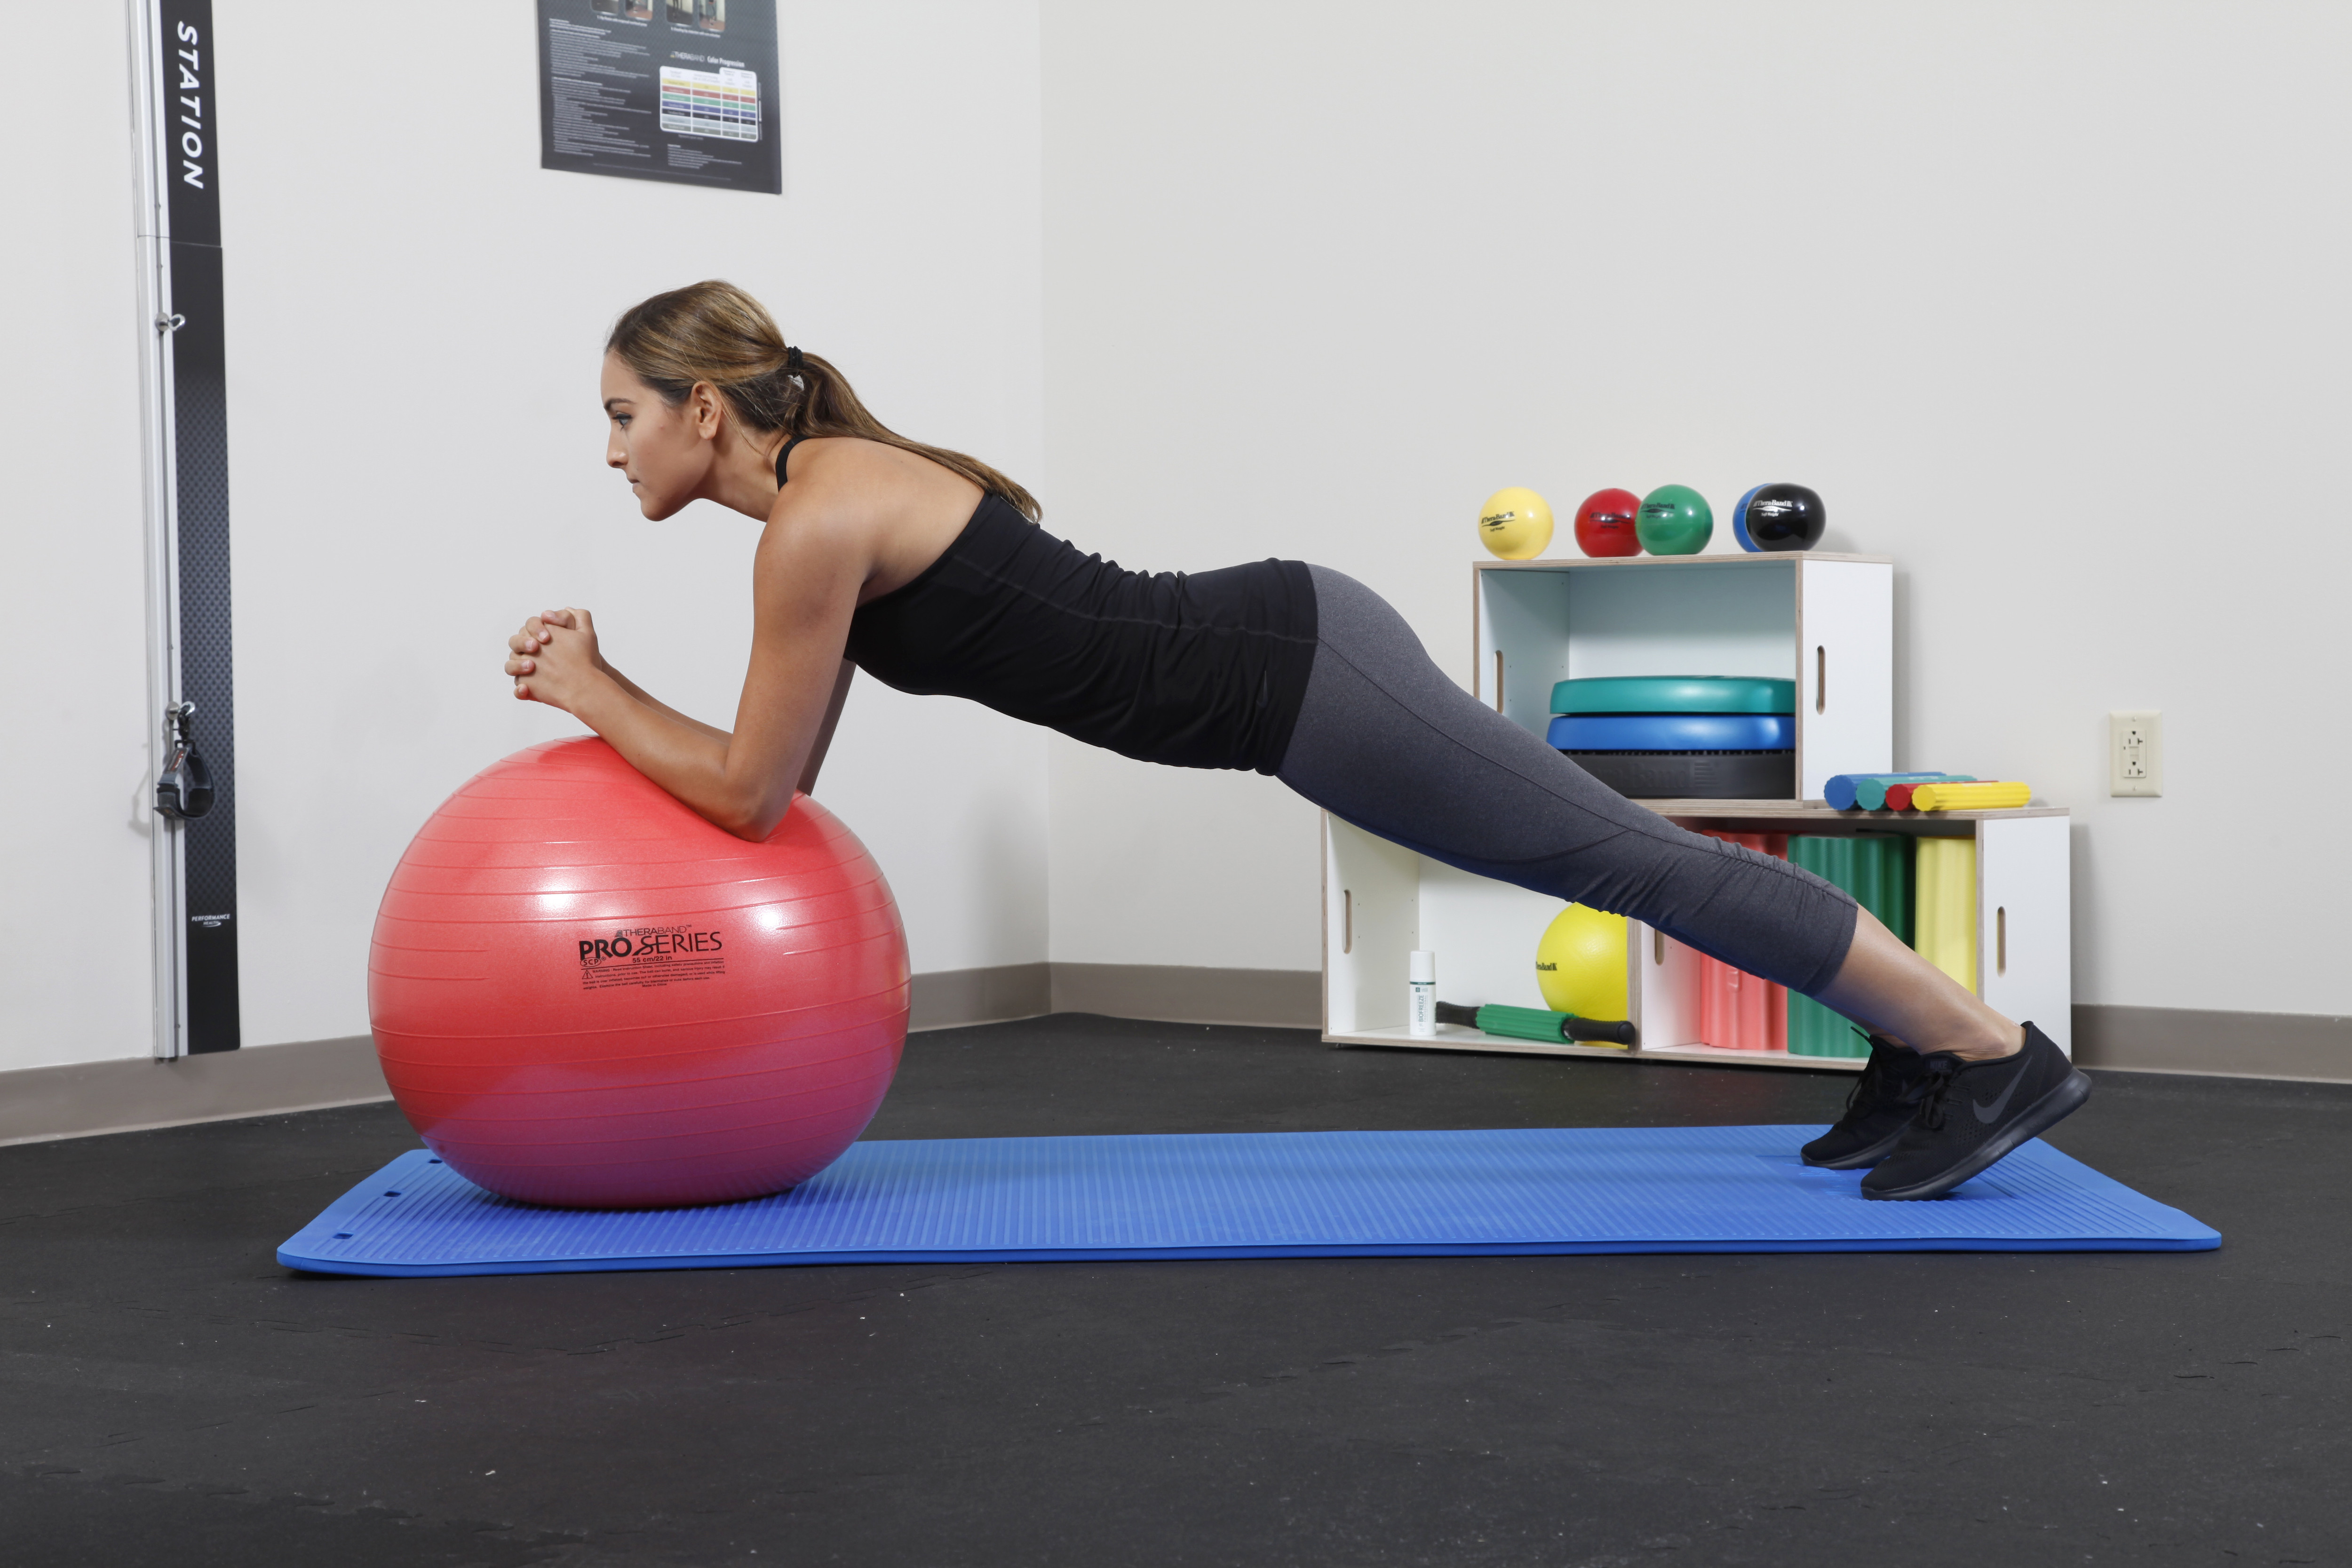 Core muscle activation during Swiss ball and traditional abdominal exercises.